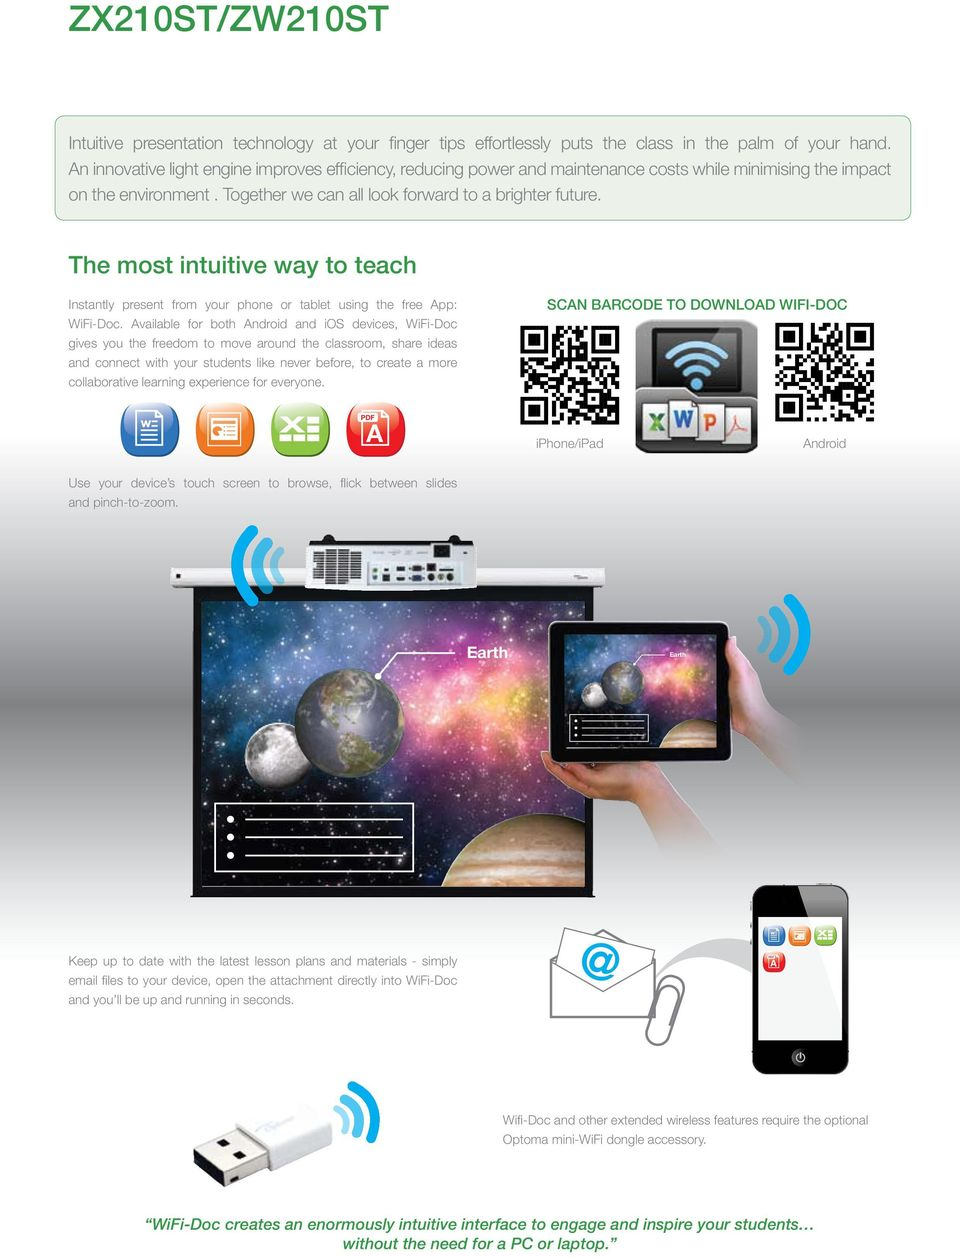 The most intuitive way to teach Instantly present from your phone or tablet using the free App: WiFi-Doc.